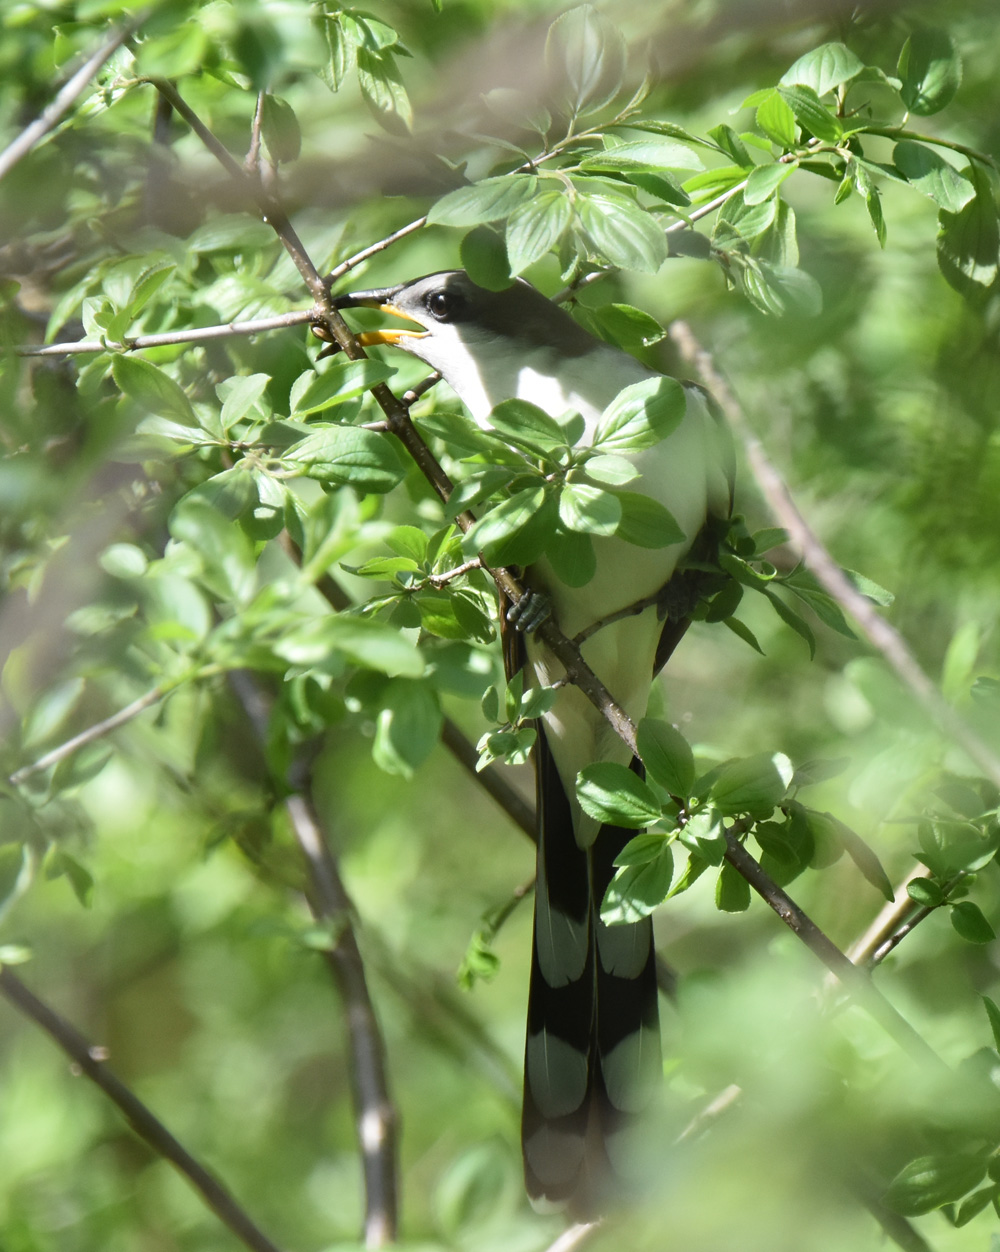 Photo of Yellow Billed Cuckoo Finding Food on NaturalCrooksDotCom